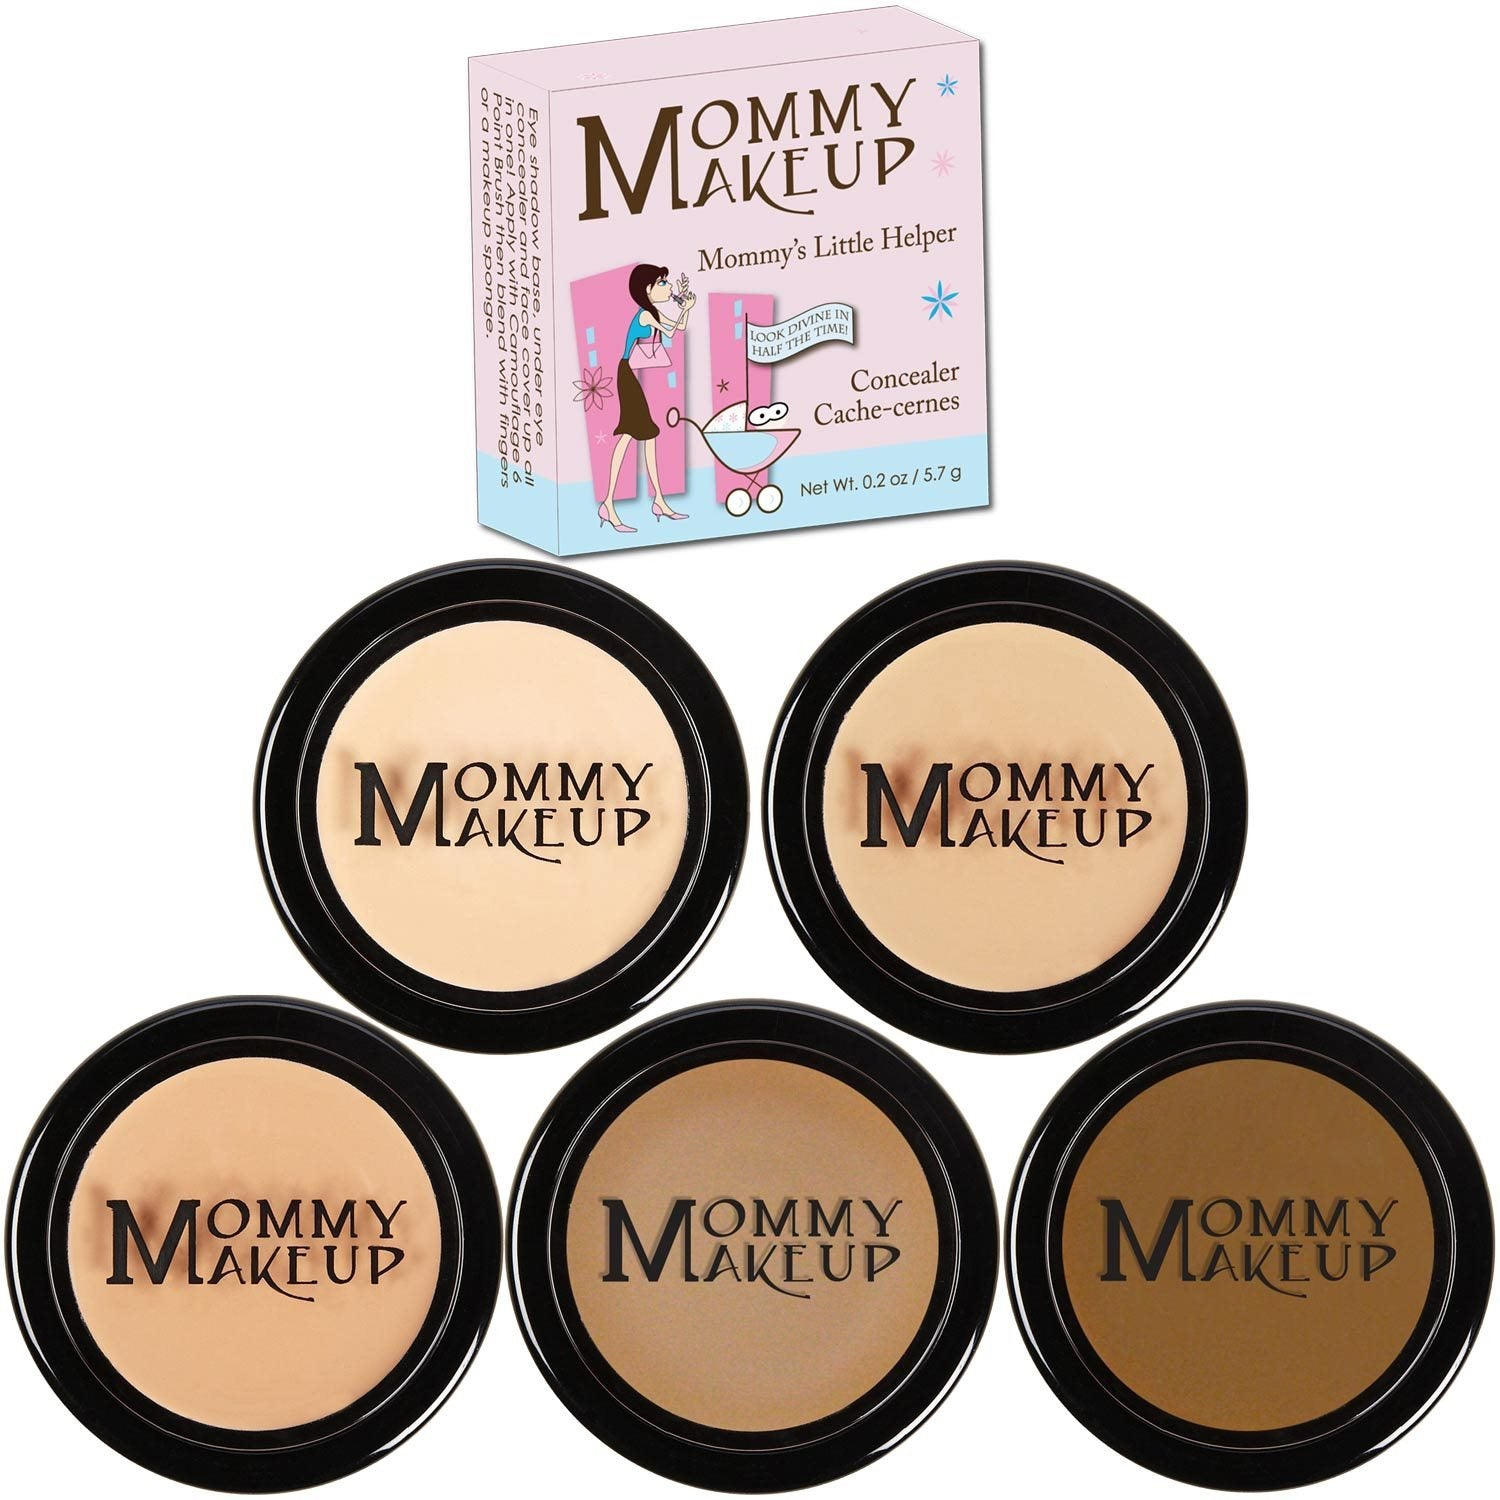 Mommy's Little Helper Concealer - Face Makeup > Foundations & Concealers - Mommy Makeup